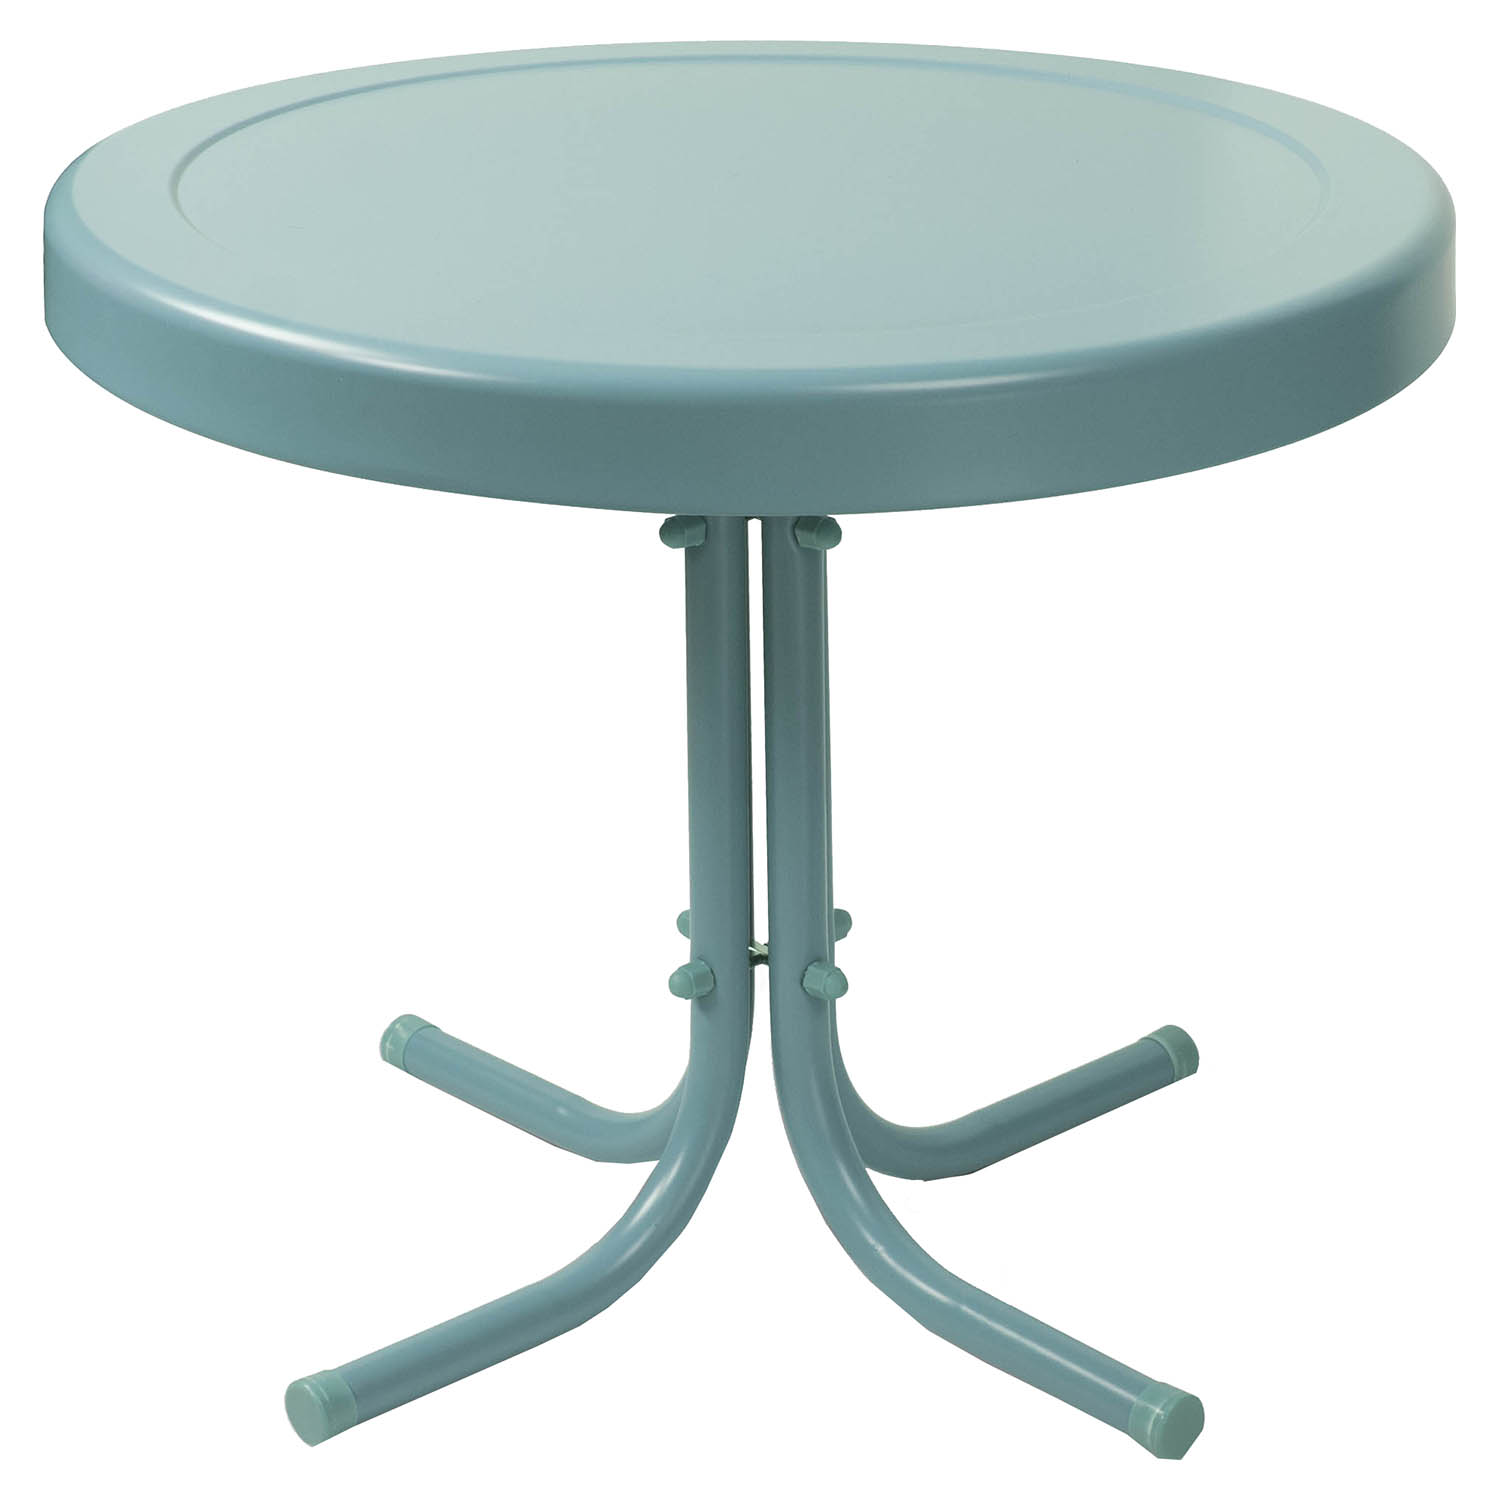 Retro Metal Side Table - Caribbean Blue - CROS-CO1011A-BL